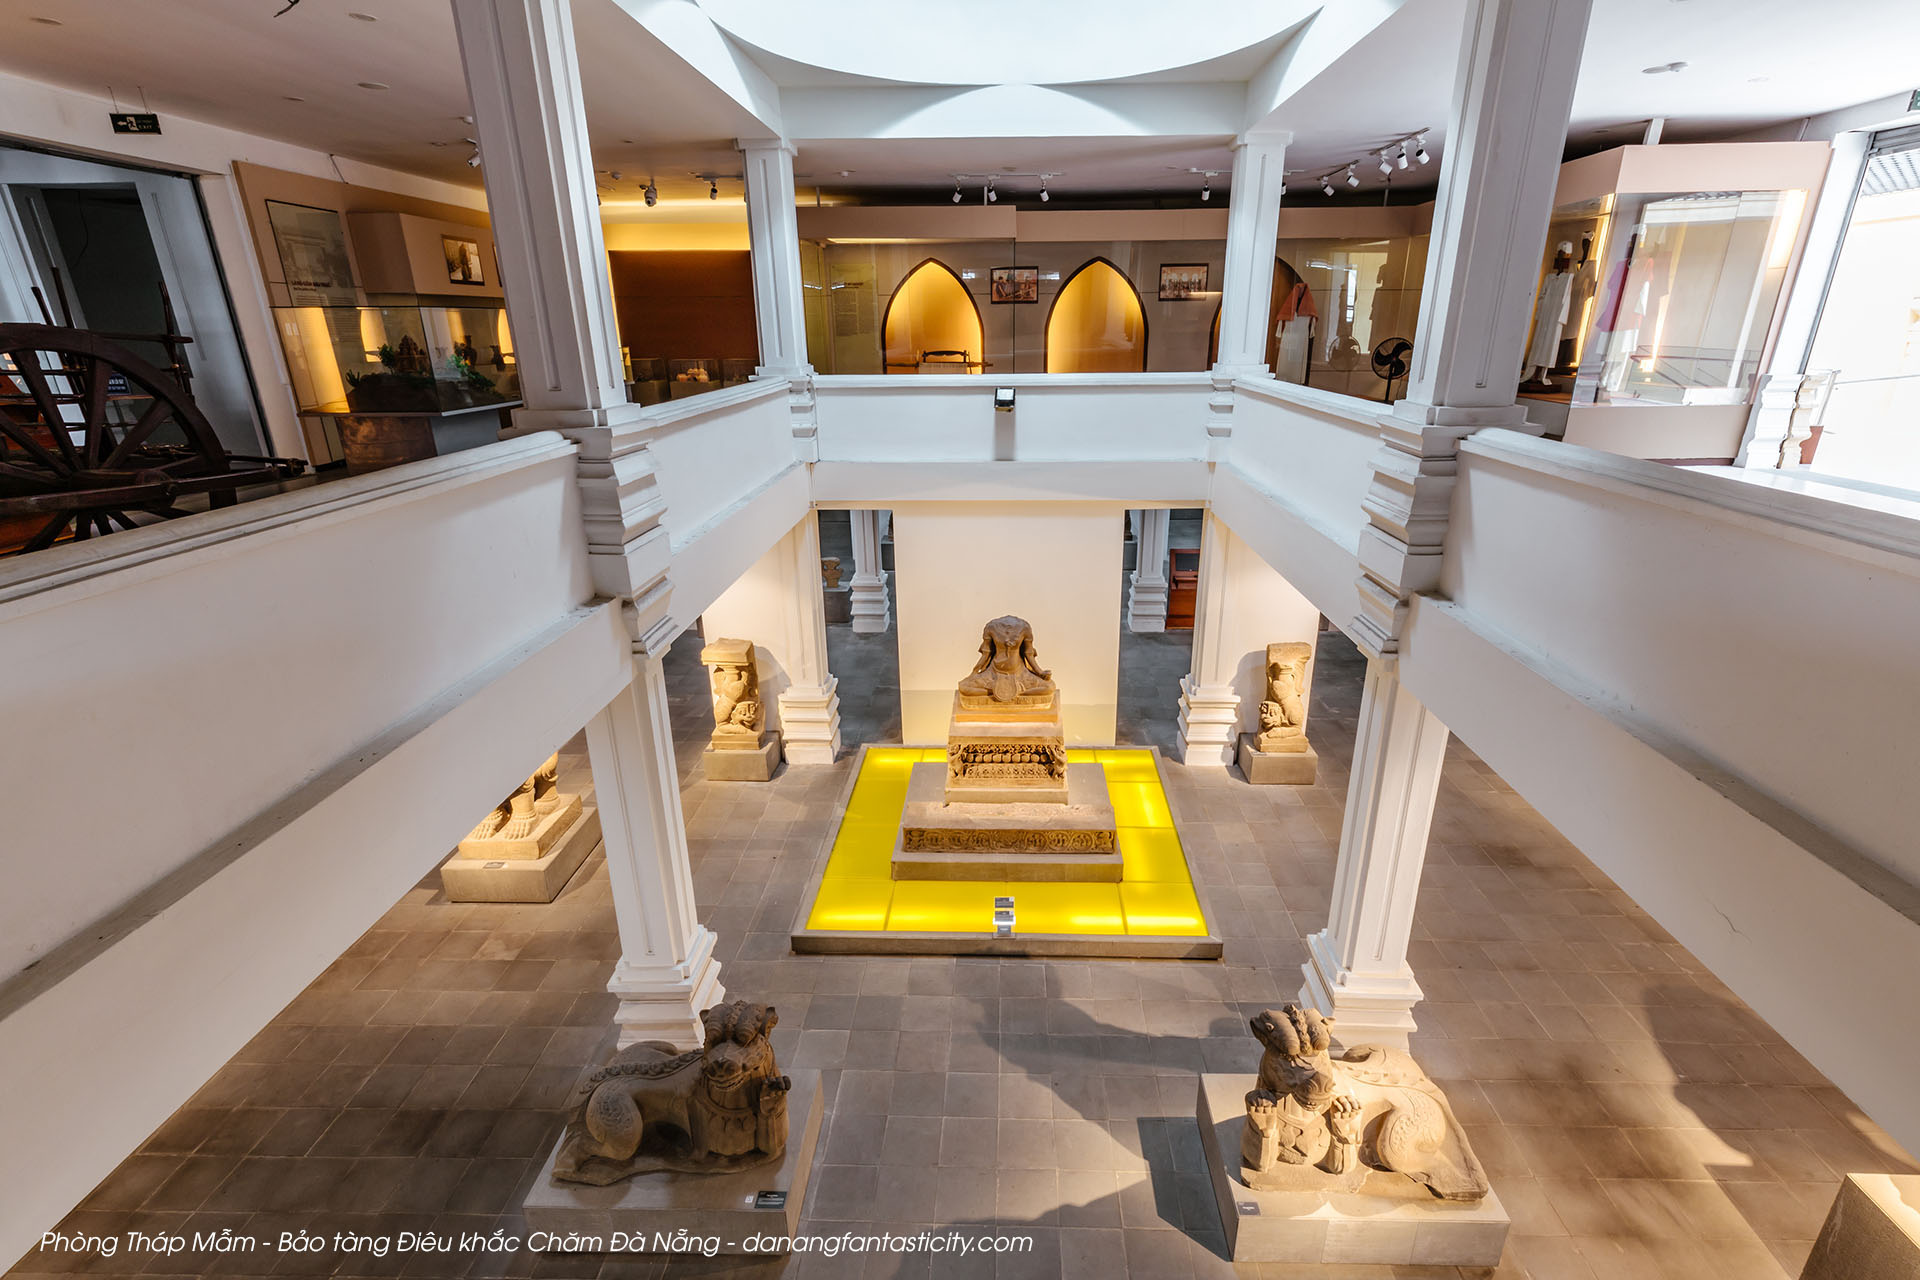 3d Scanning Trial Experience Explore The Timeless Values At Danang Musem Of Cham Sculpture 02